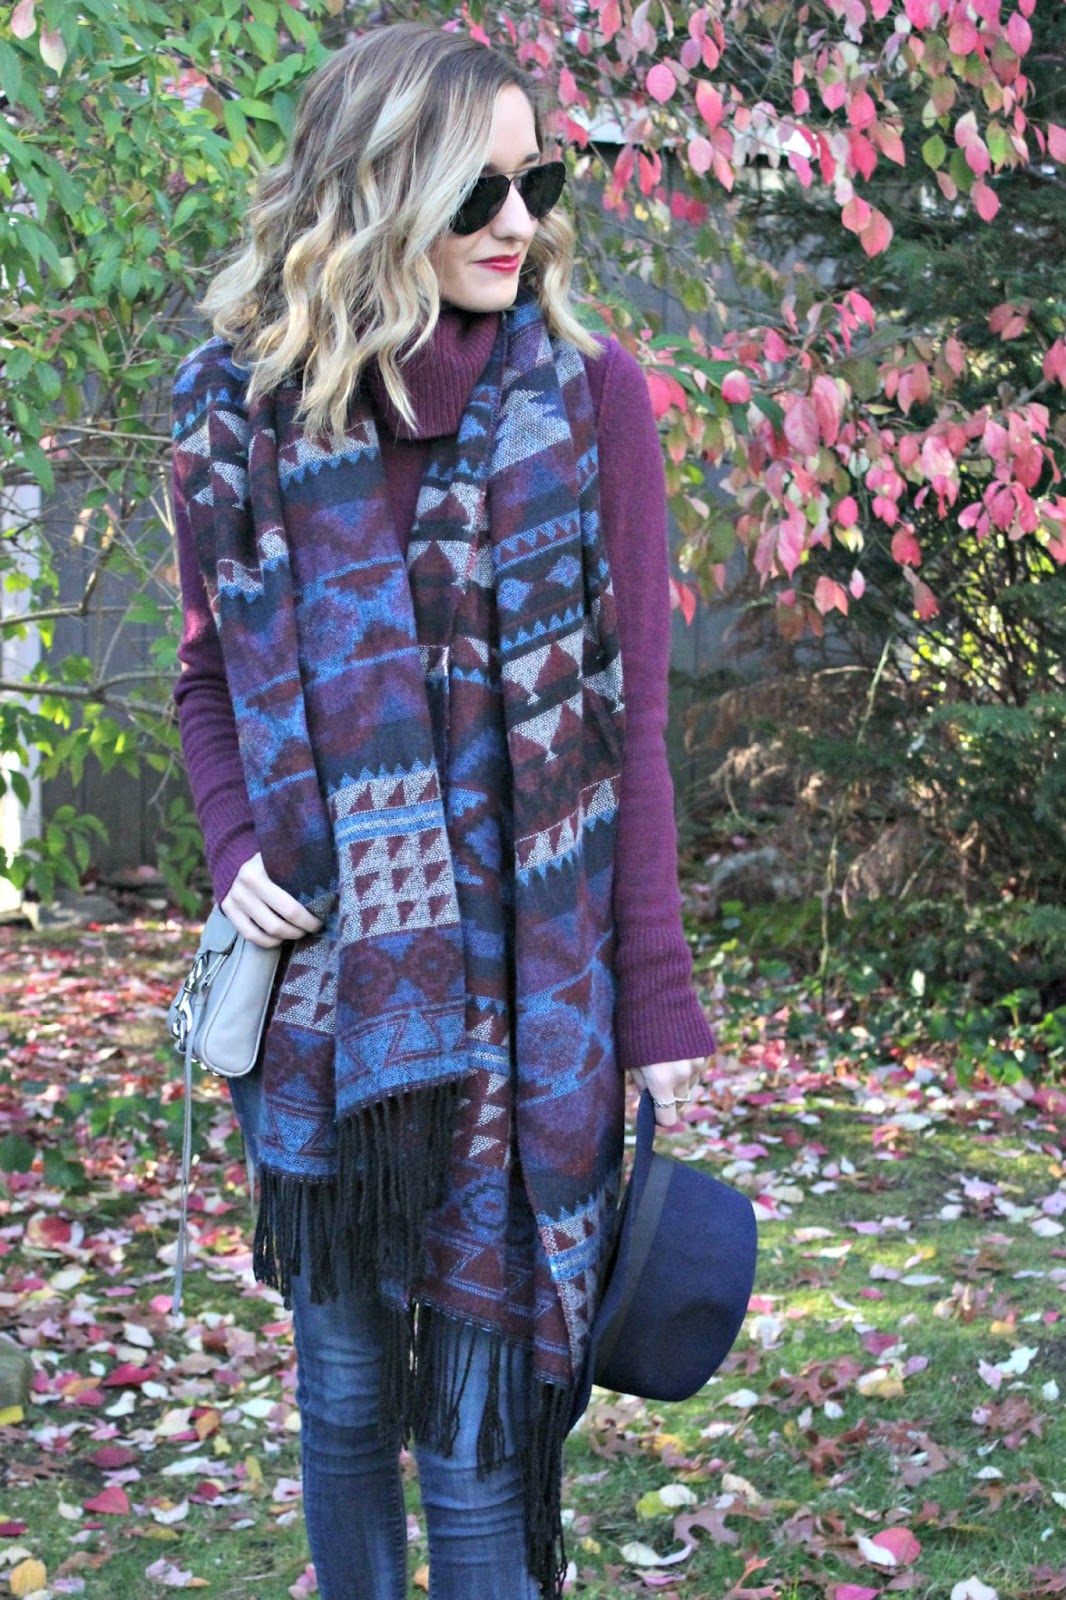 burgundy & navy outfit